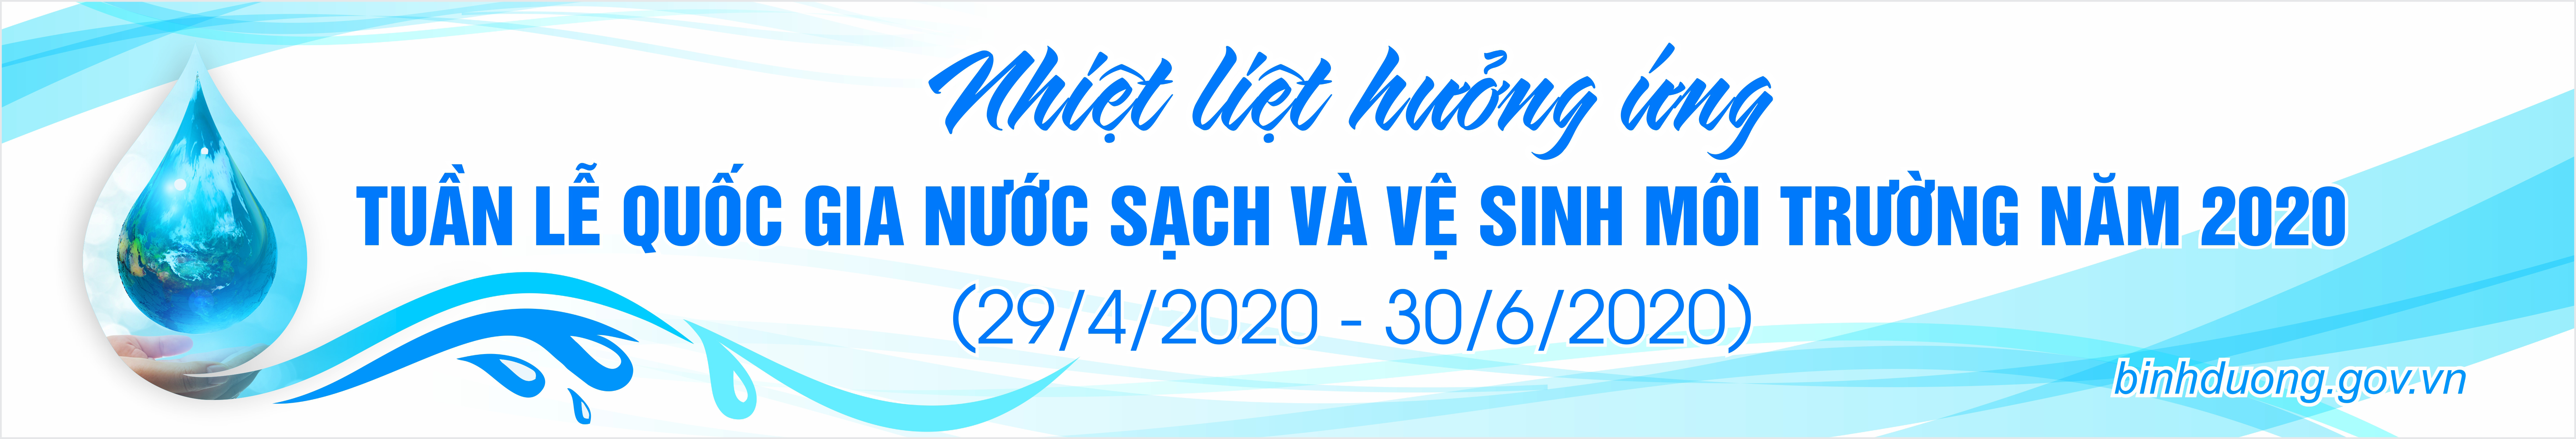 Banner nuoc sach.png